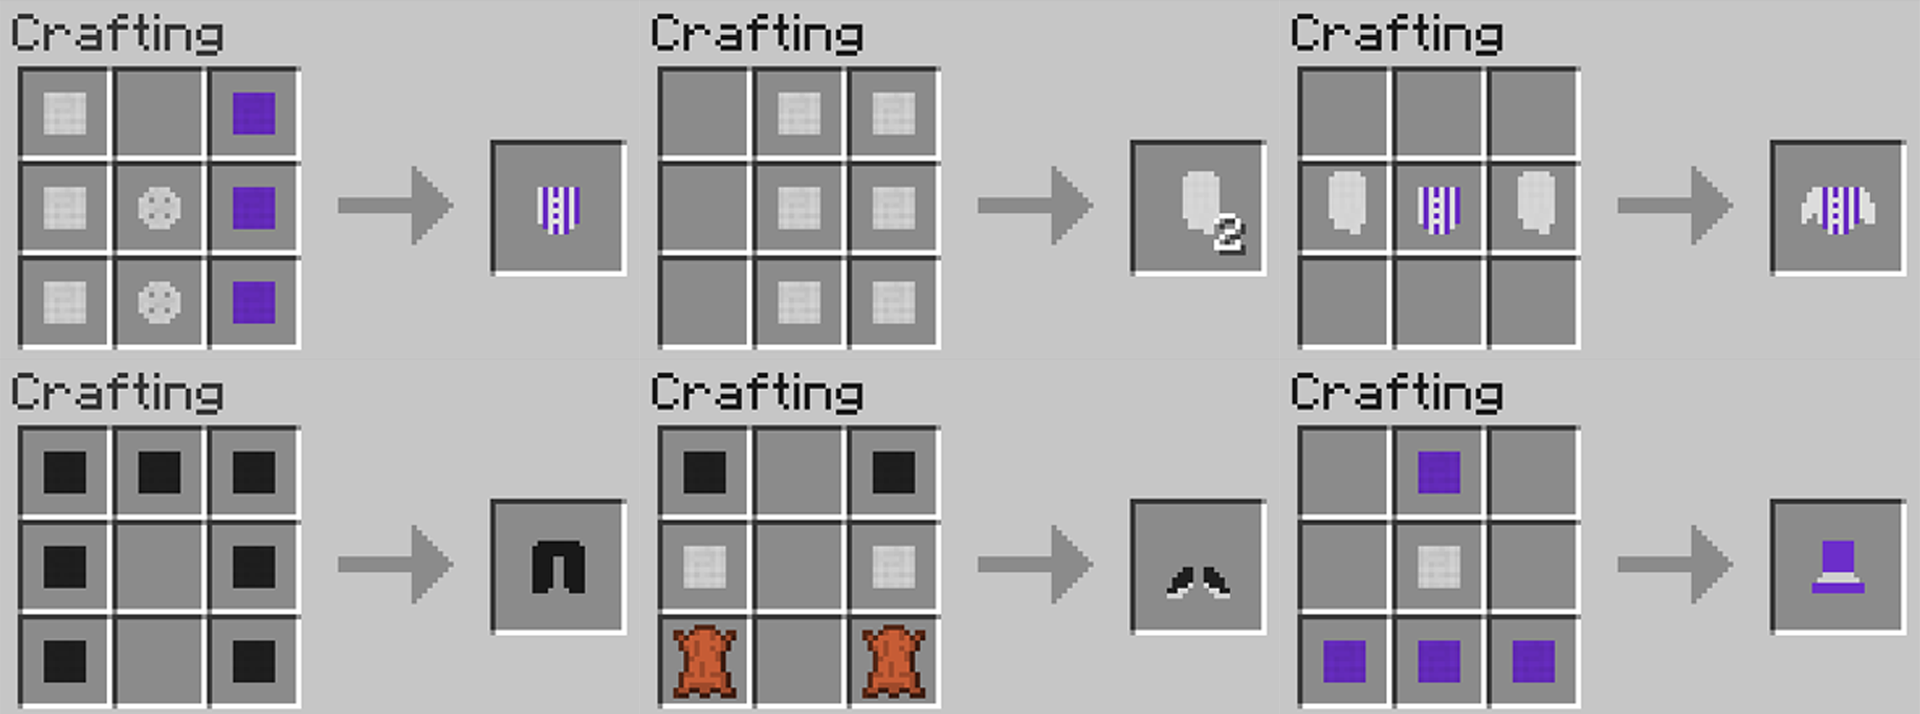 minecraft crafting 1.10.2